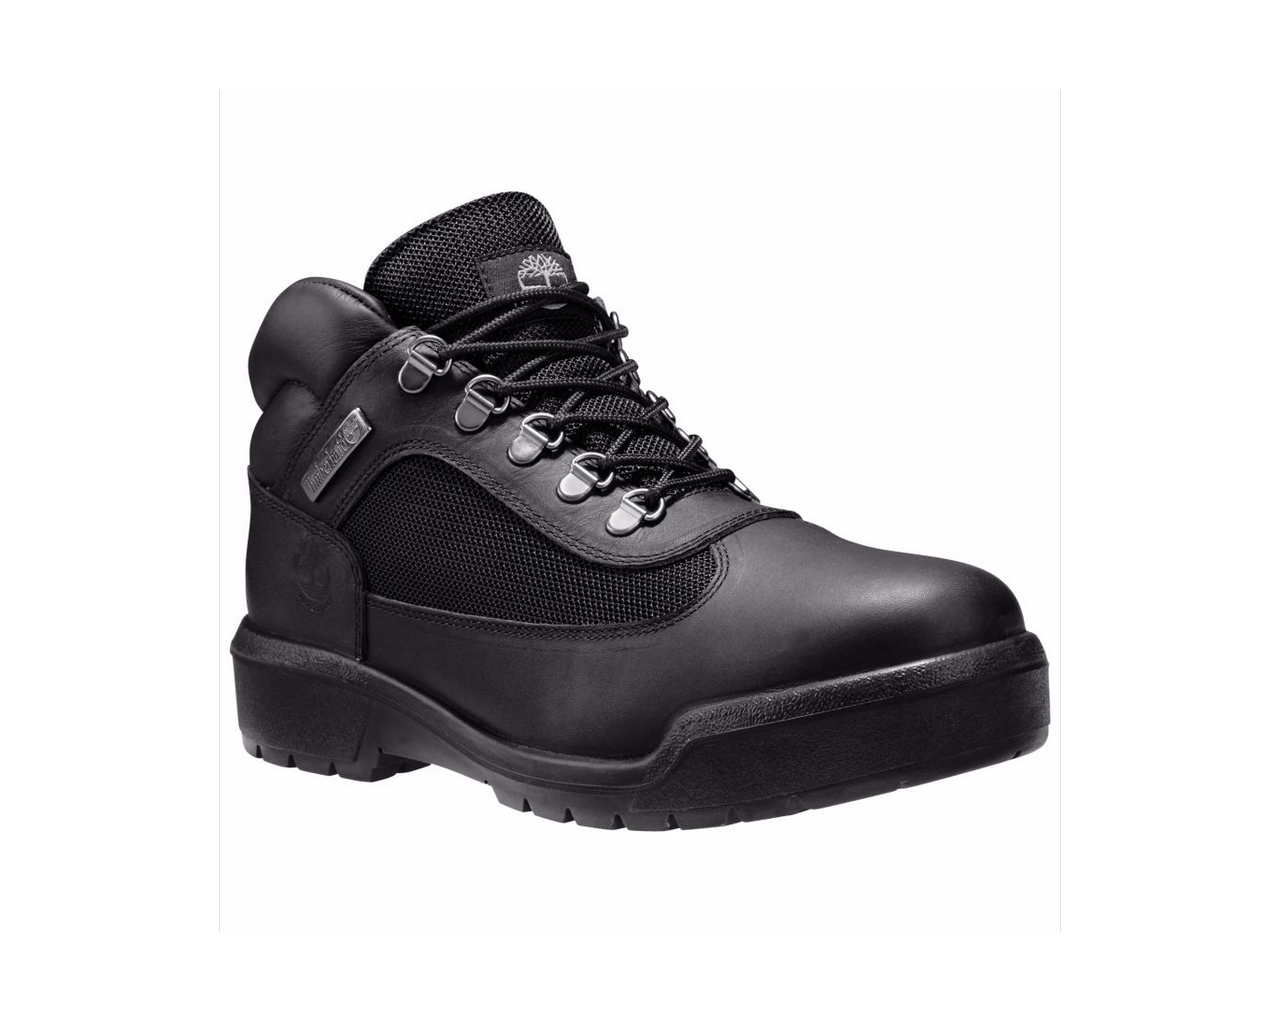 Men's Timberland Black Waterproof Field Boots by Timberland